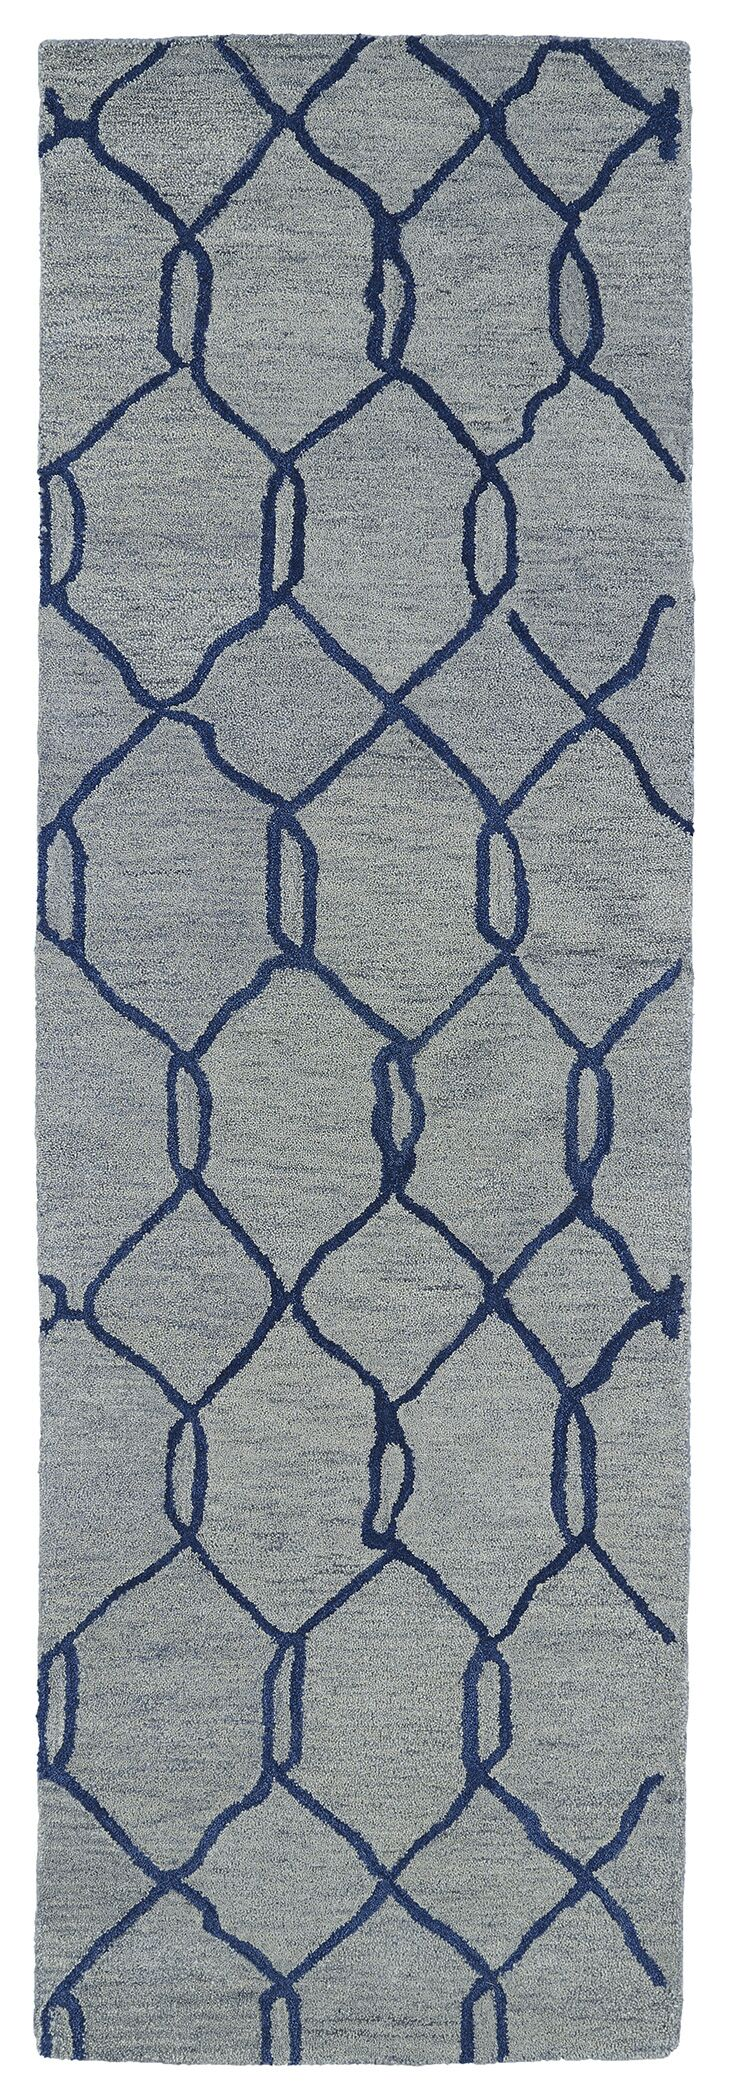 Zack Light Blue Geometric Rug Rug Size: Runner 2'6